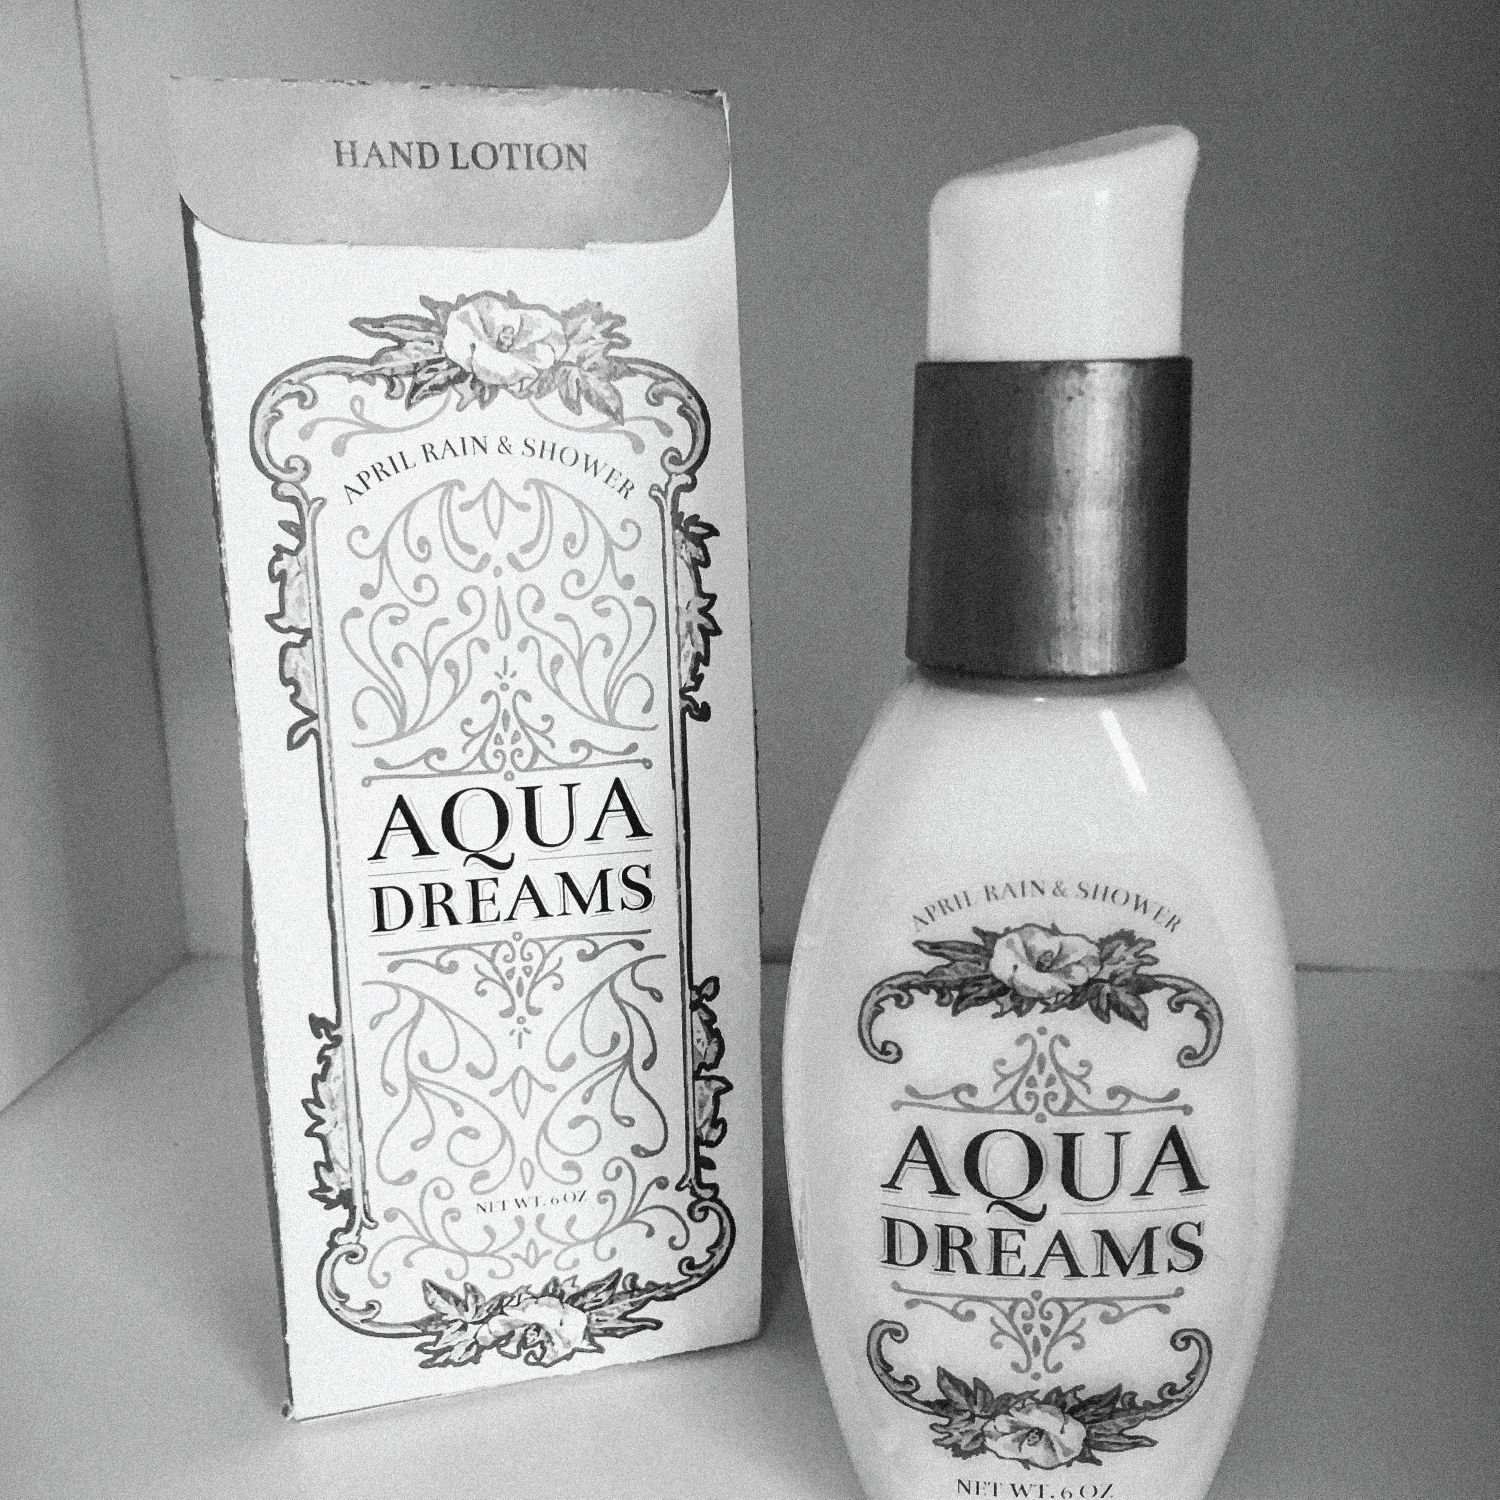 Lotion Packaging Design